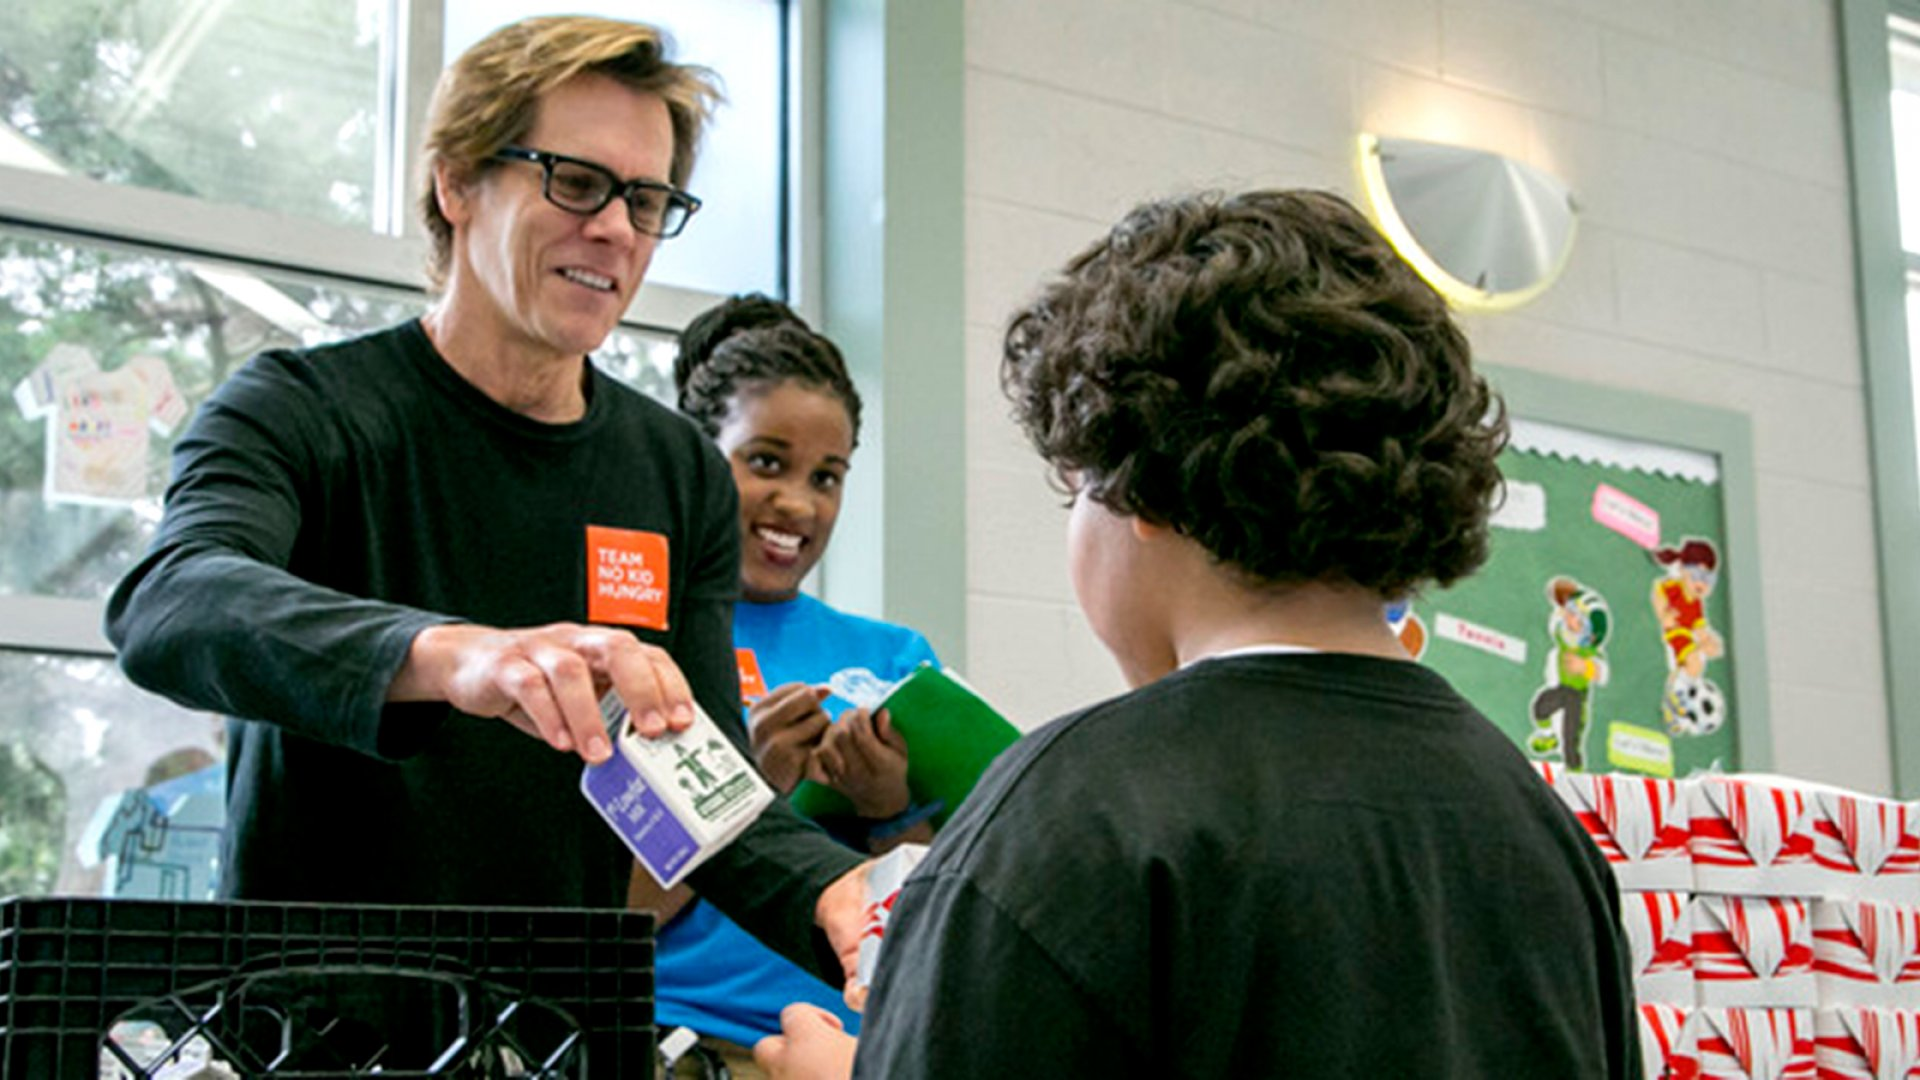 Kevin Bacon and Billy Shore: Hungry For Change